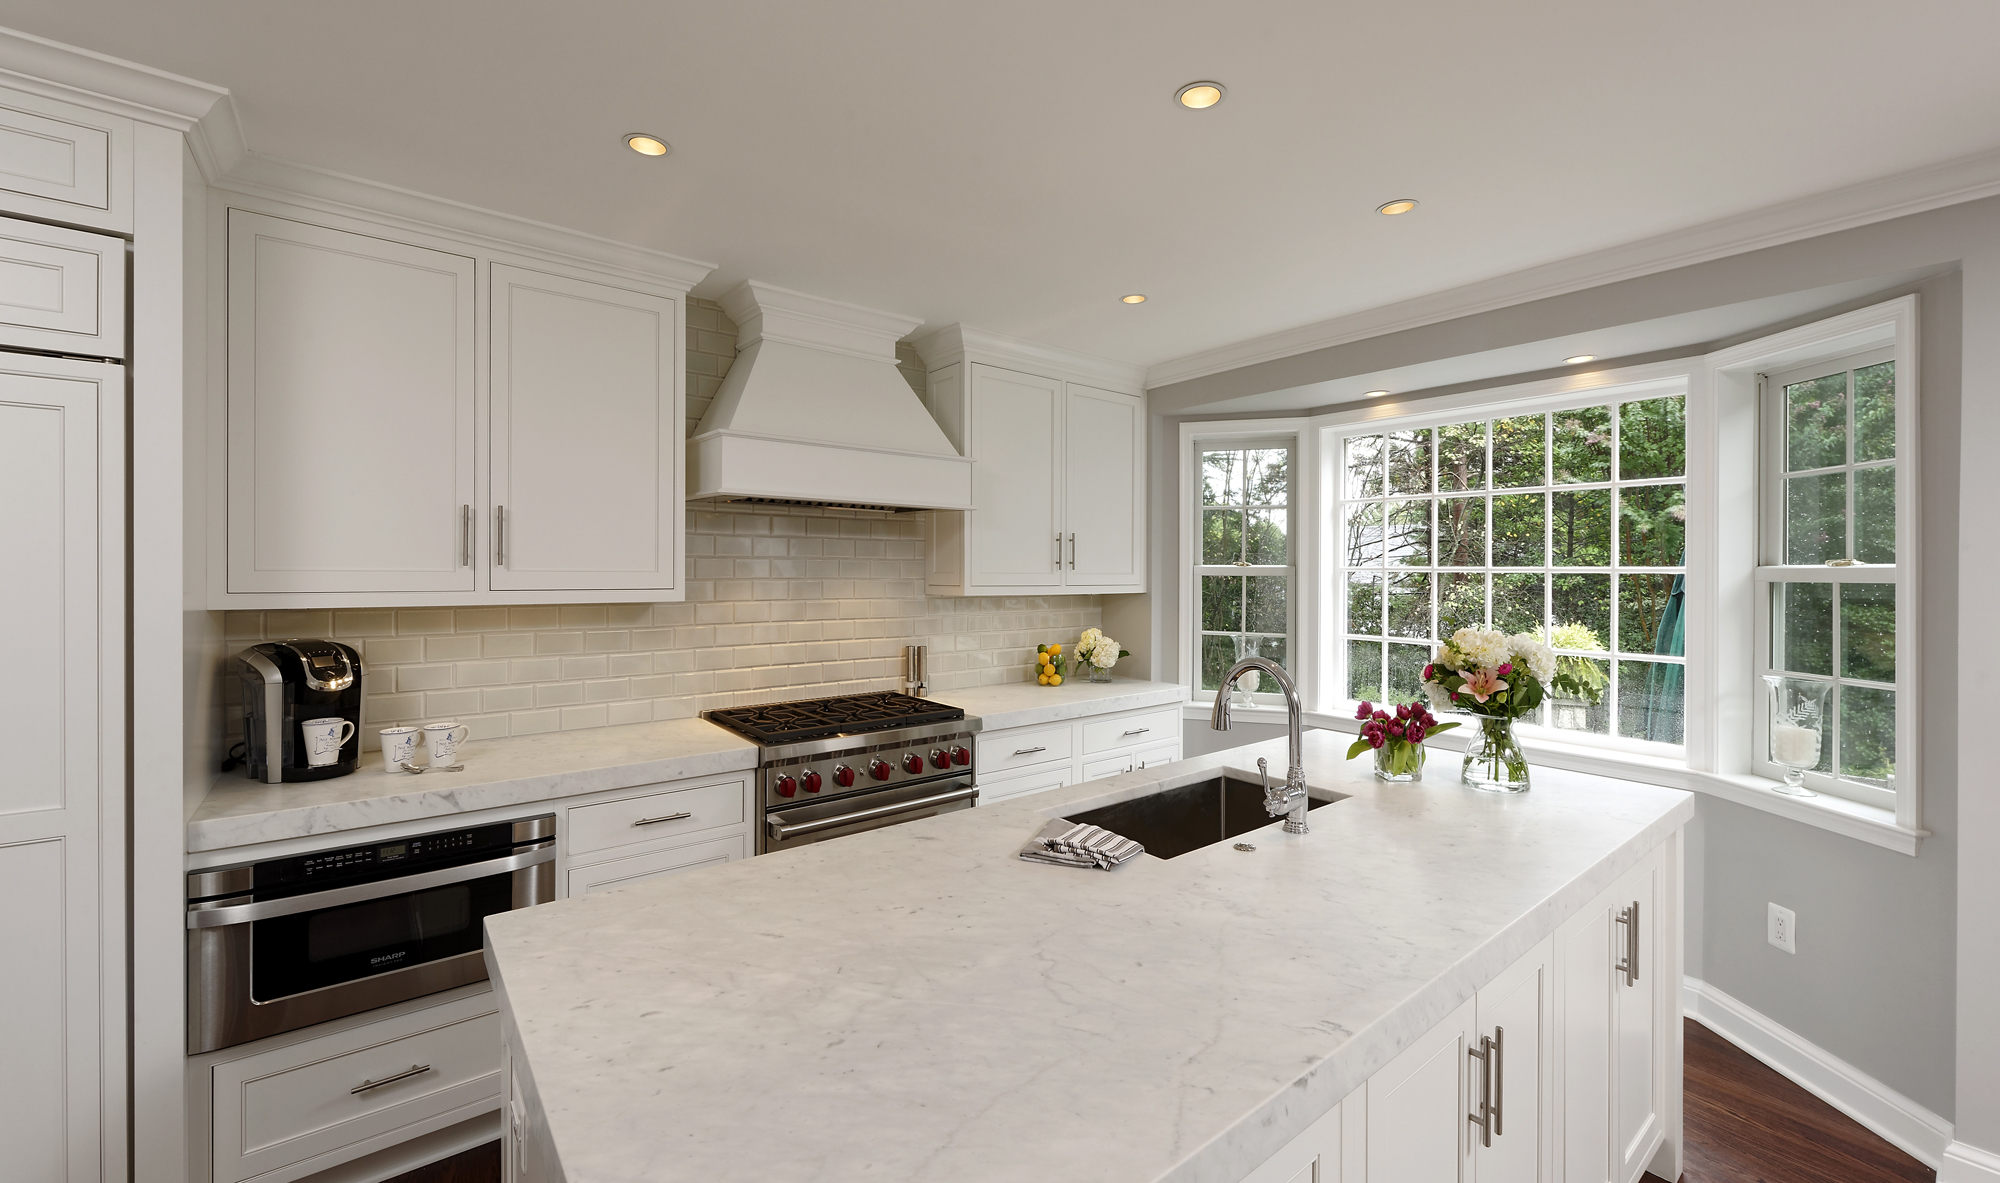 whole house design build renovation in bethesda, md | bowa